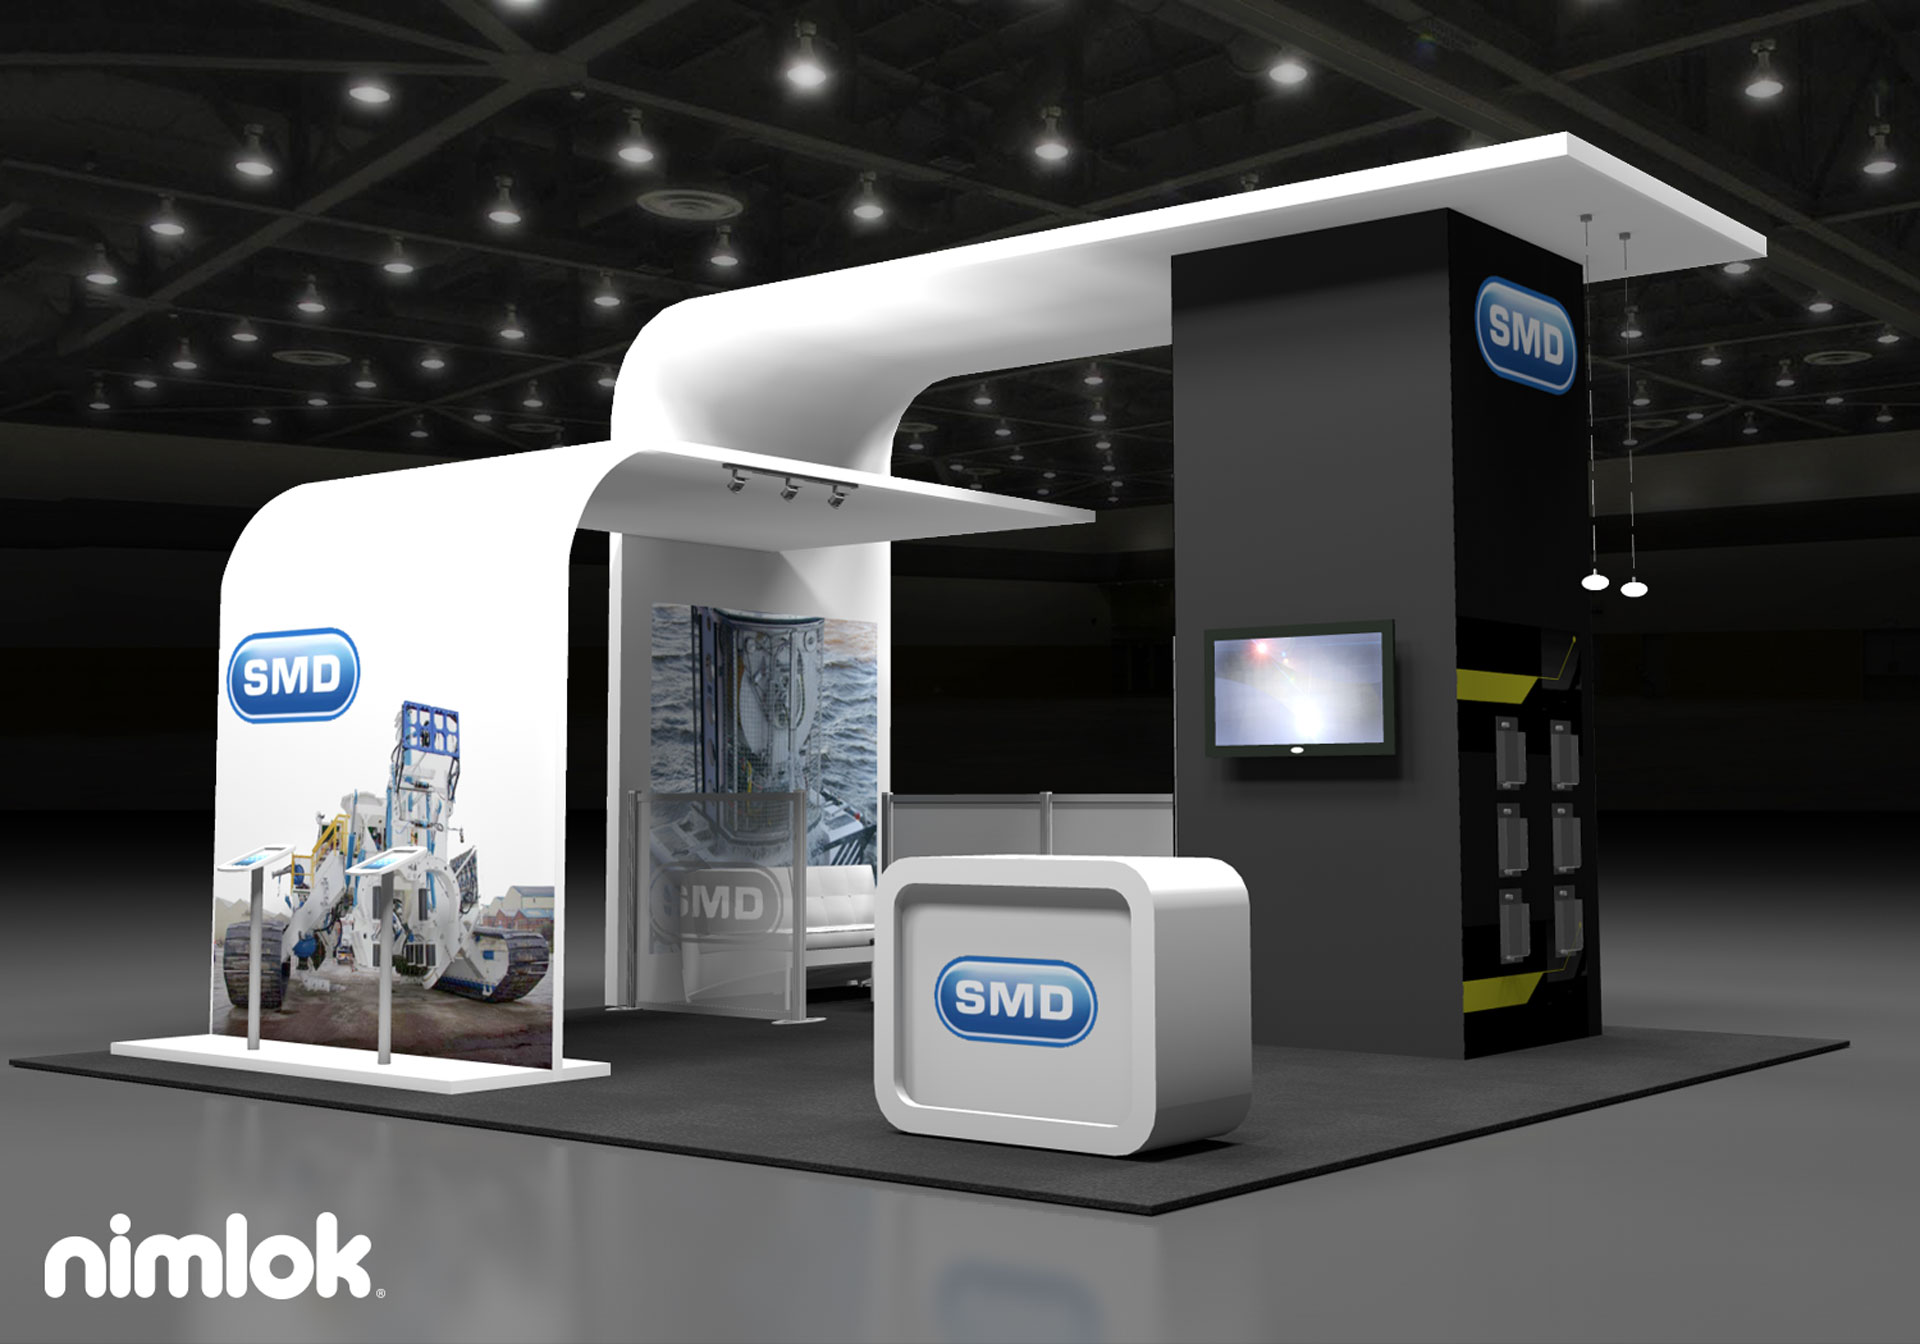 Smd custom 20x20 island trade show exhibit nimlok for Stand modulaire